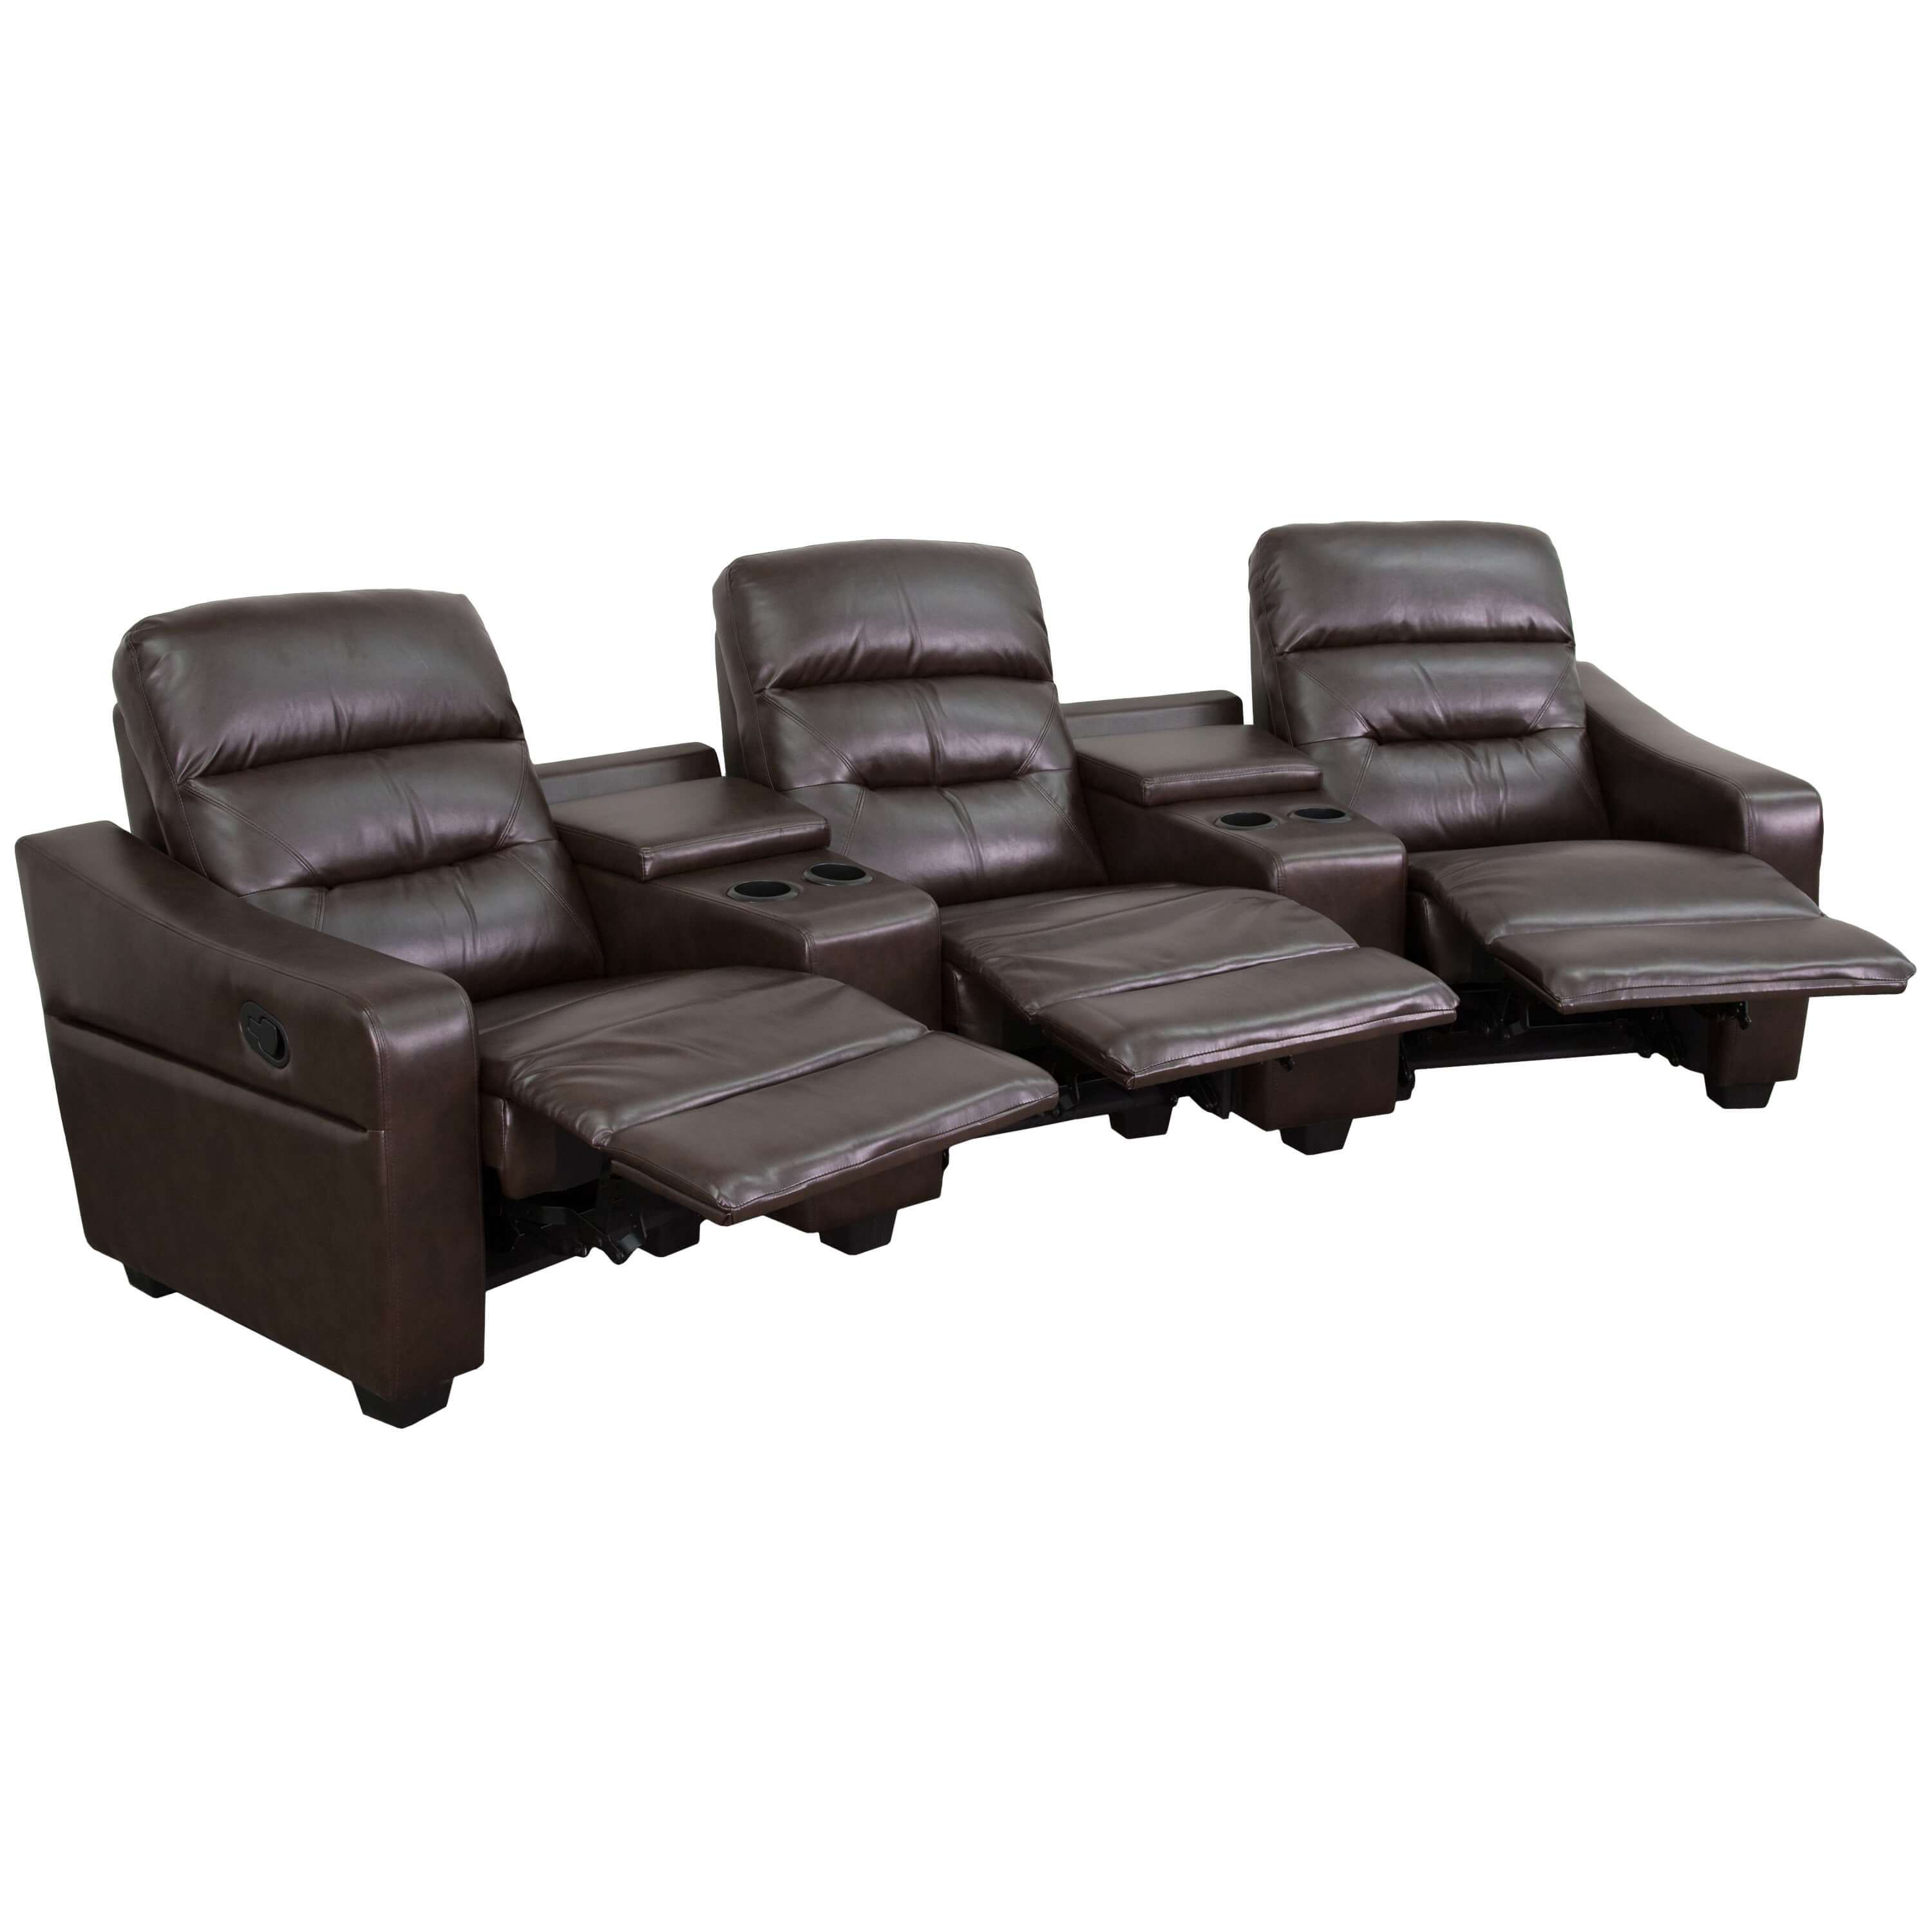 movie theatre chairs for home bloom high chair dietrich seats seating